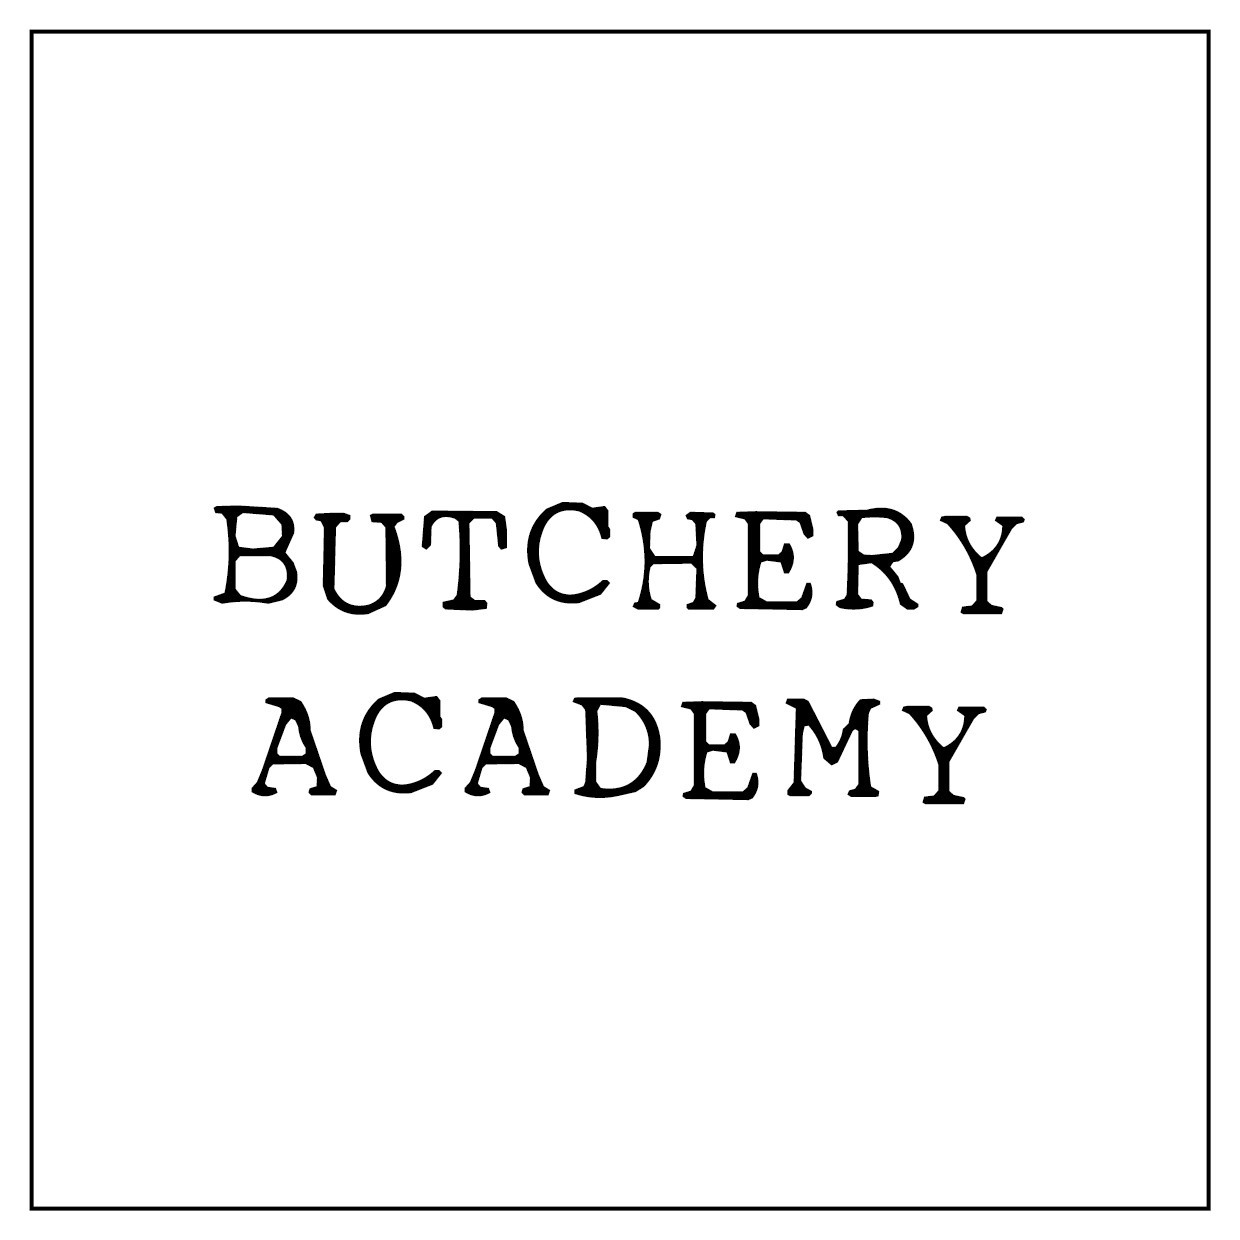 Welkom in The Butchery Academy!